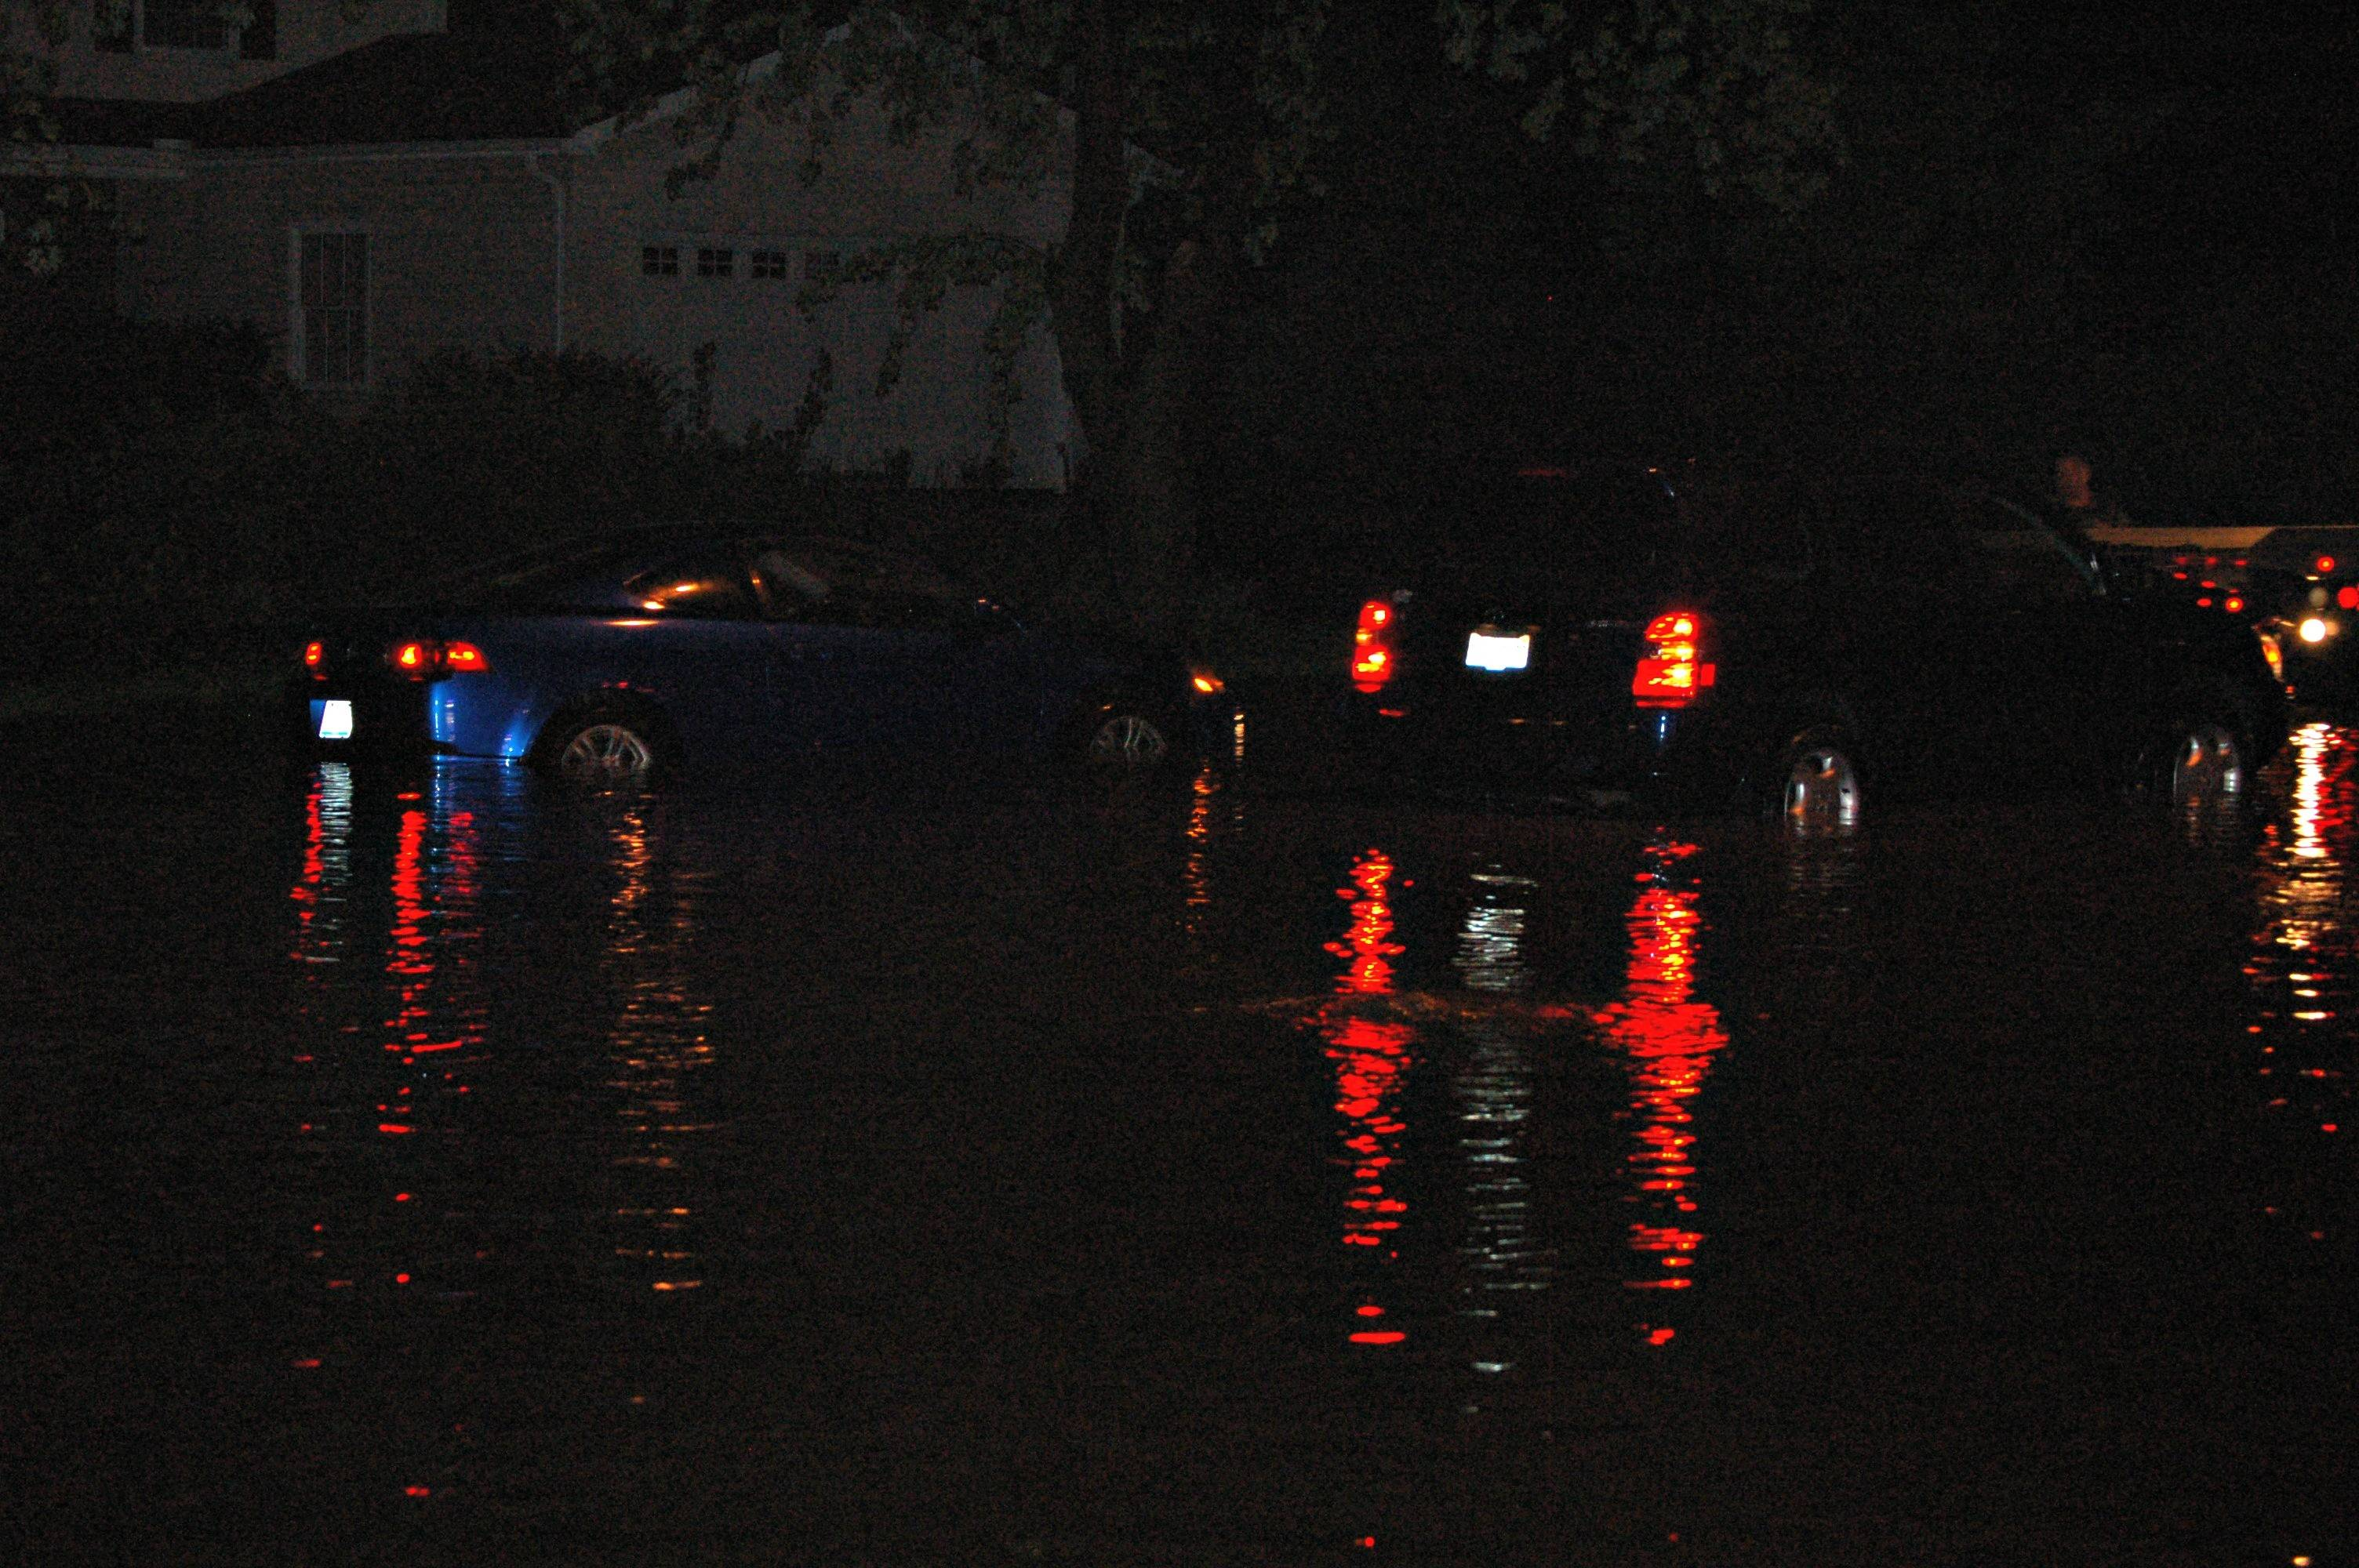 Cars were deep in water on Oleson Drive in Naperville after a deluge of rain and hail hit DuPage County suburbs Tuesday. Nearby resident Maggie Newlin said she had to park her car and walk home.